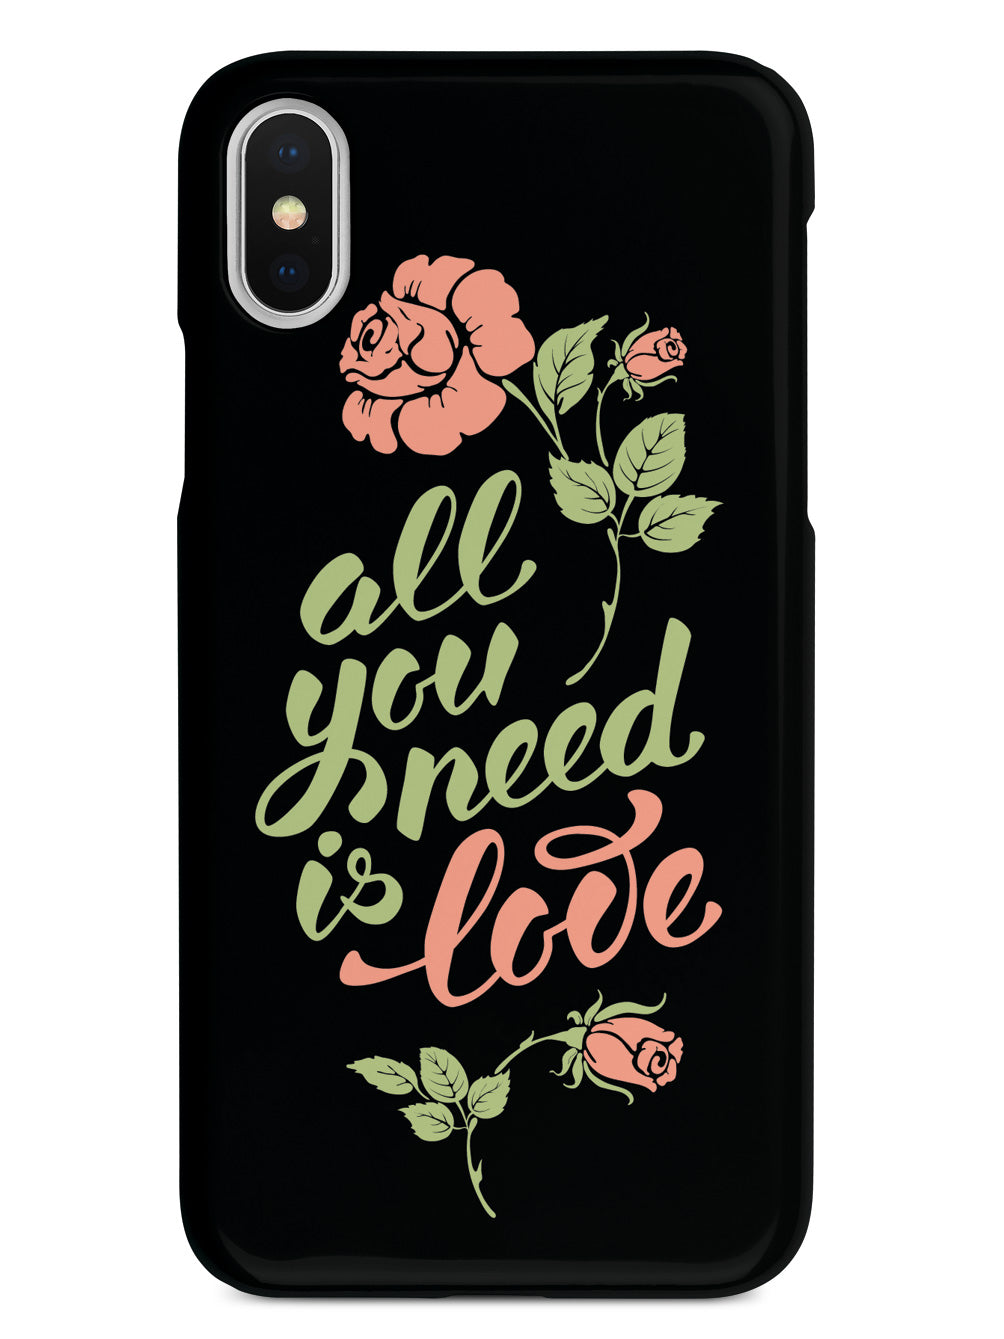 All You Need is LOVE - Flower Script - Black Case